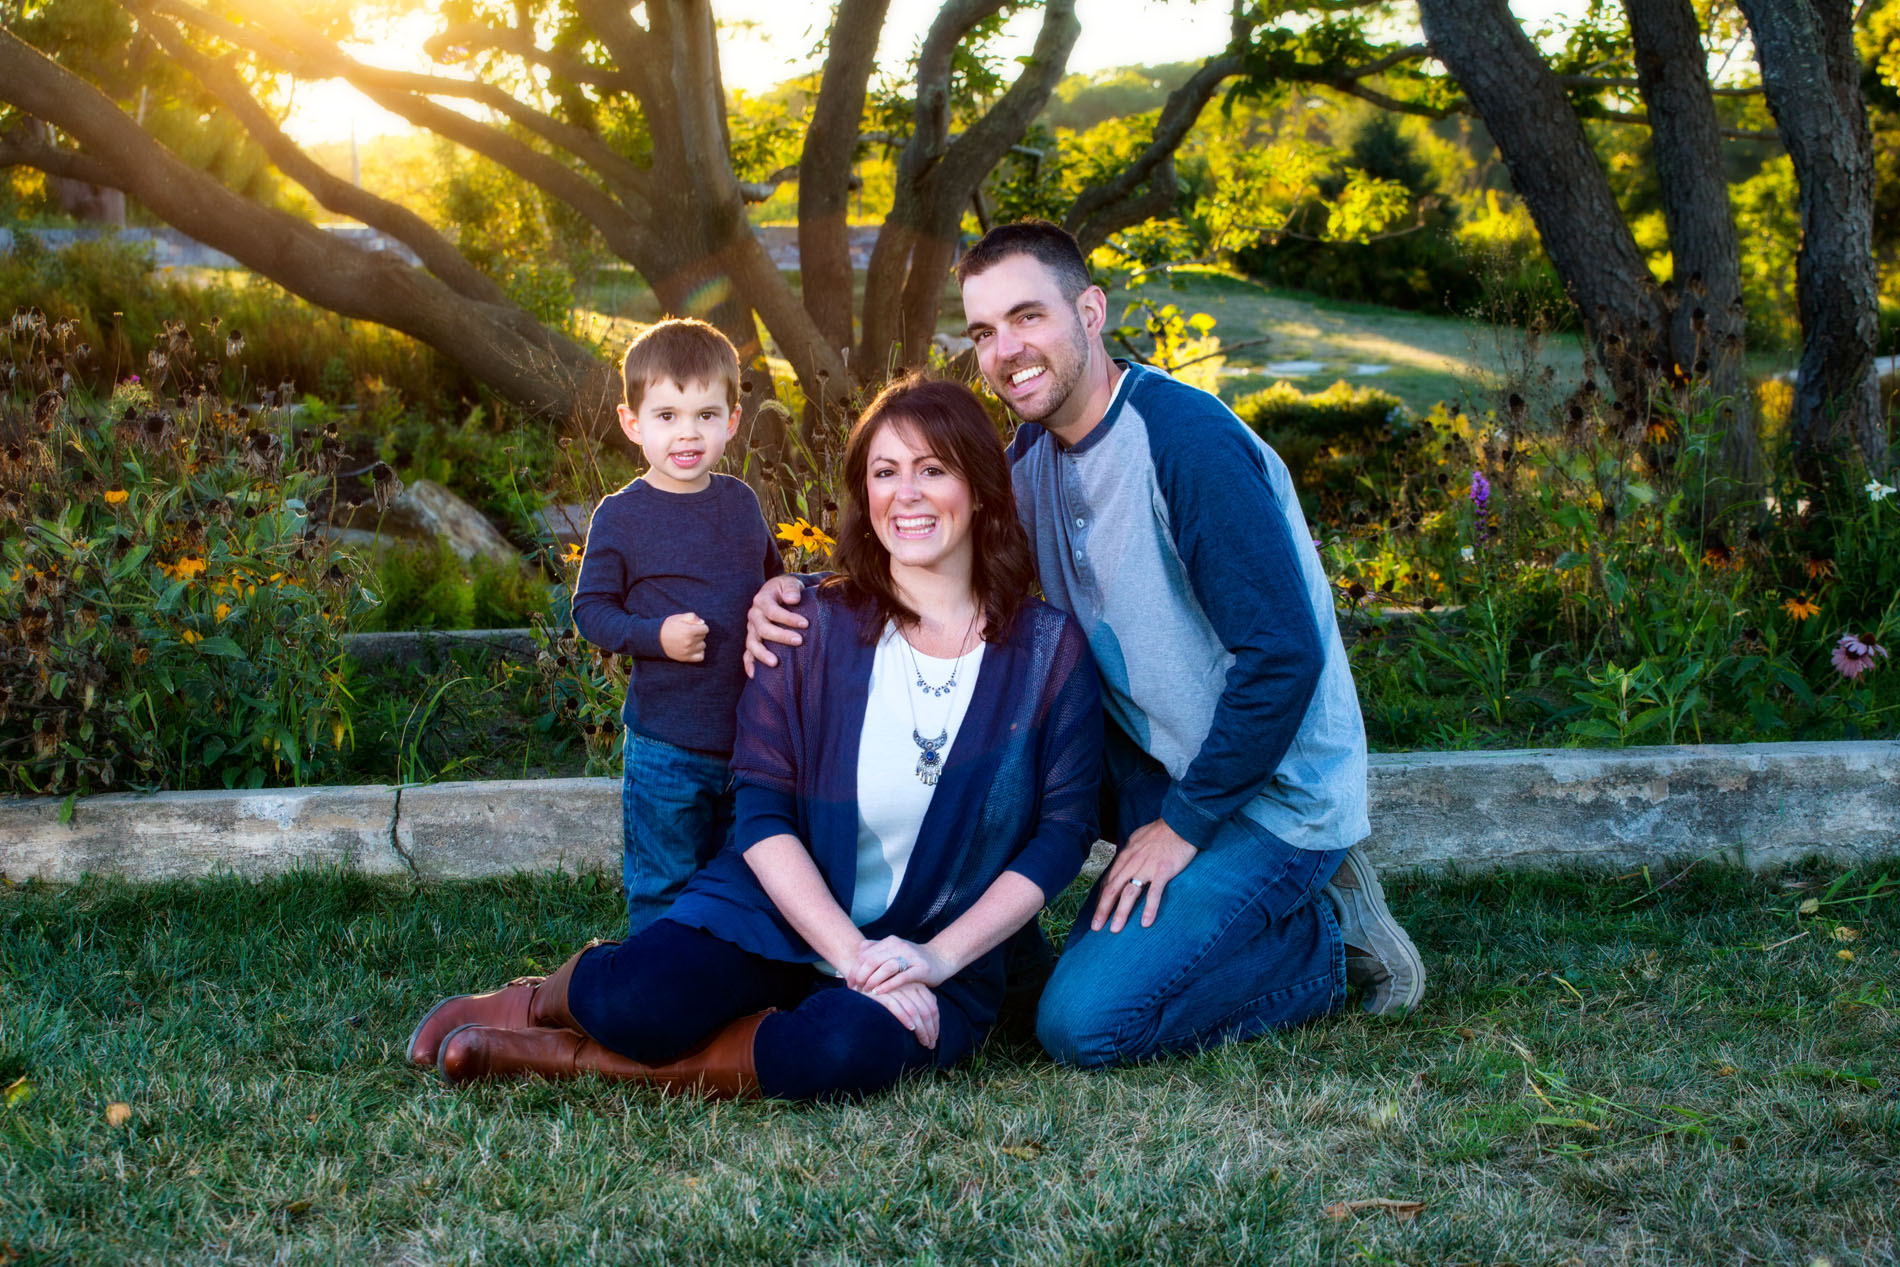 mom surrounded by dad and young son for fun outdoor family picture